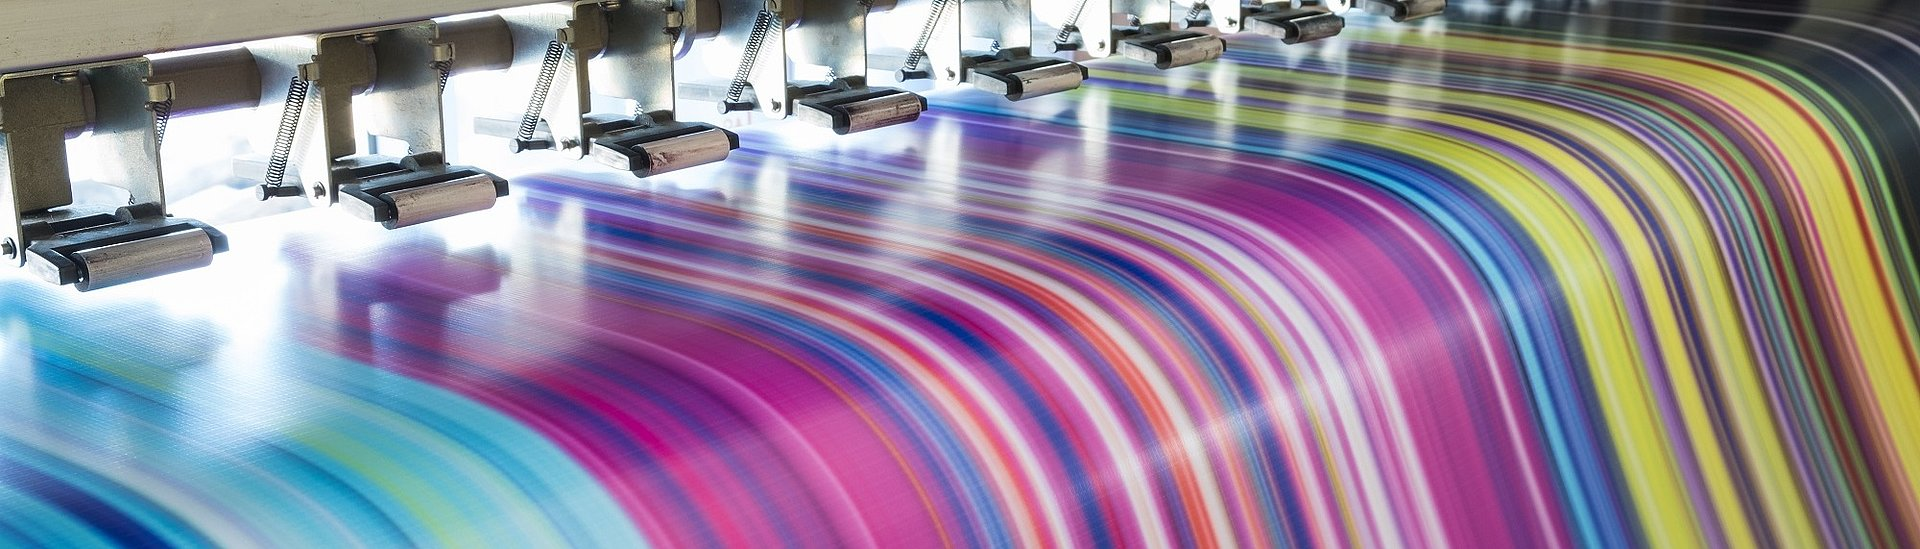 High-Performance Printing Using the Inkjet Process – Enabling Wear-Free and Energy Efficient Printing with Piezo-Driven Printheads.